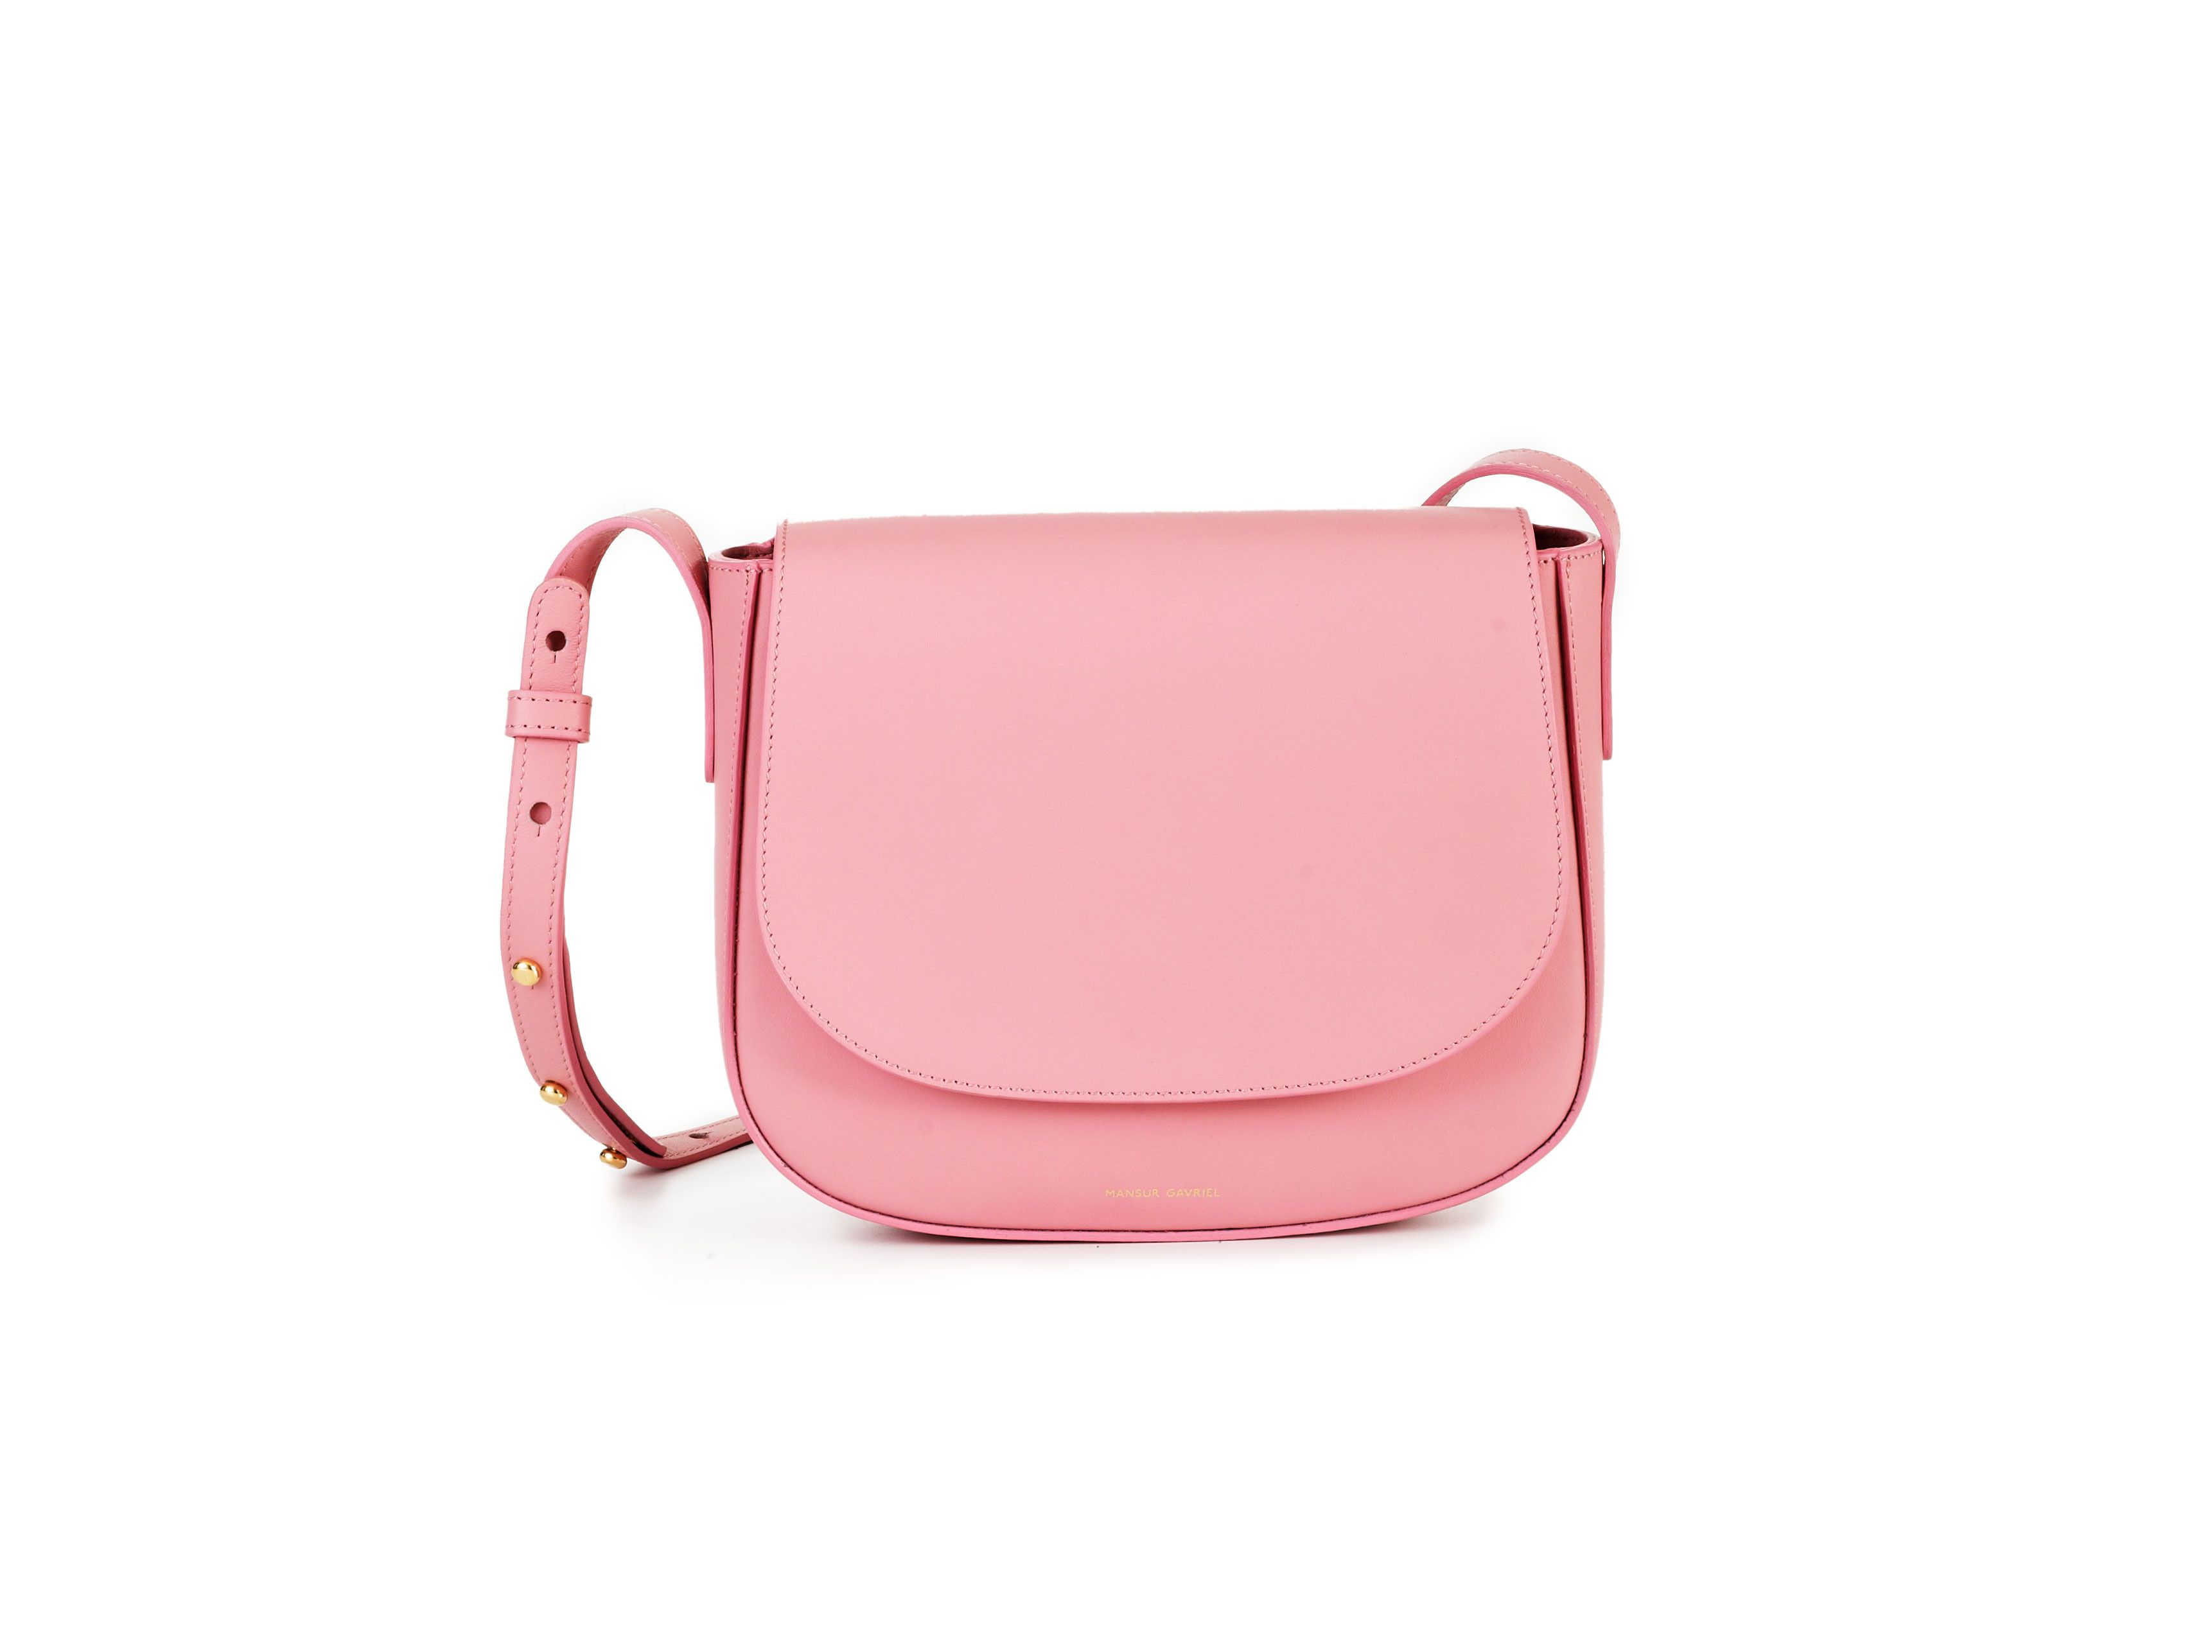 Statement Bag - The D.N.A. of Life by VIDA VIDA GZirniV